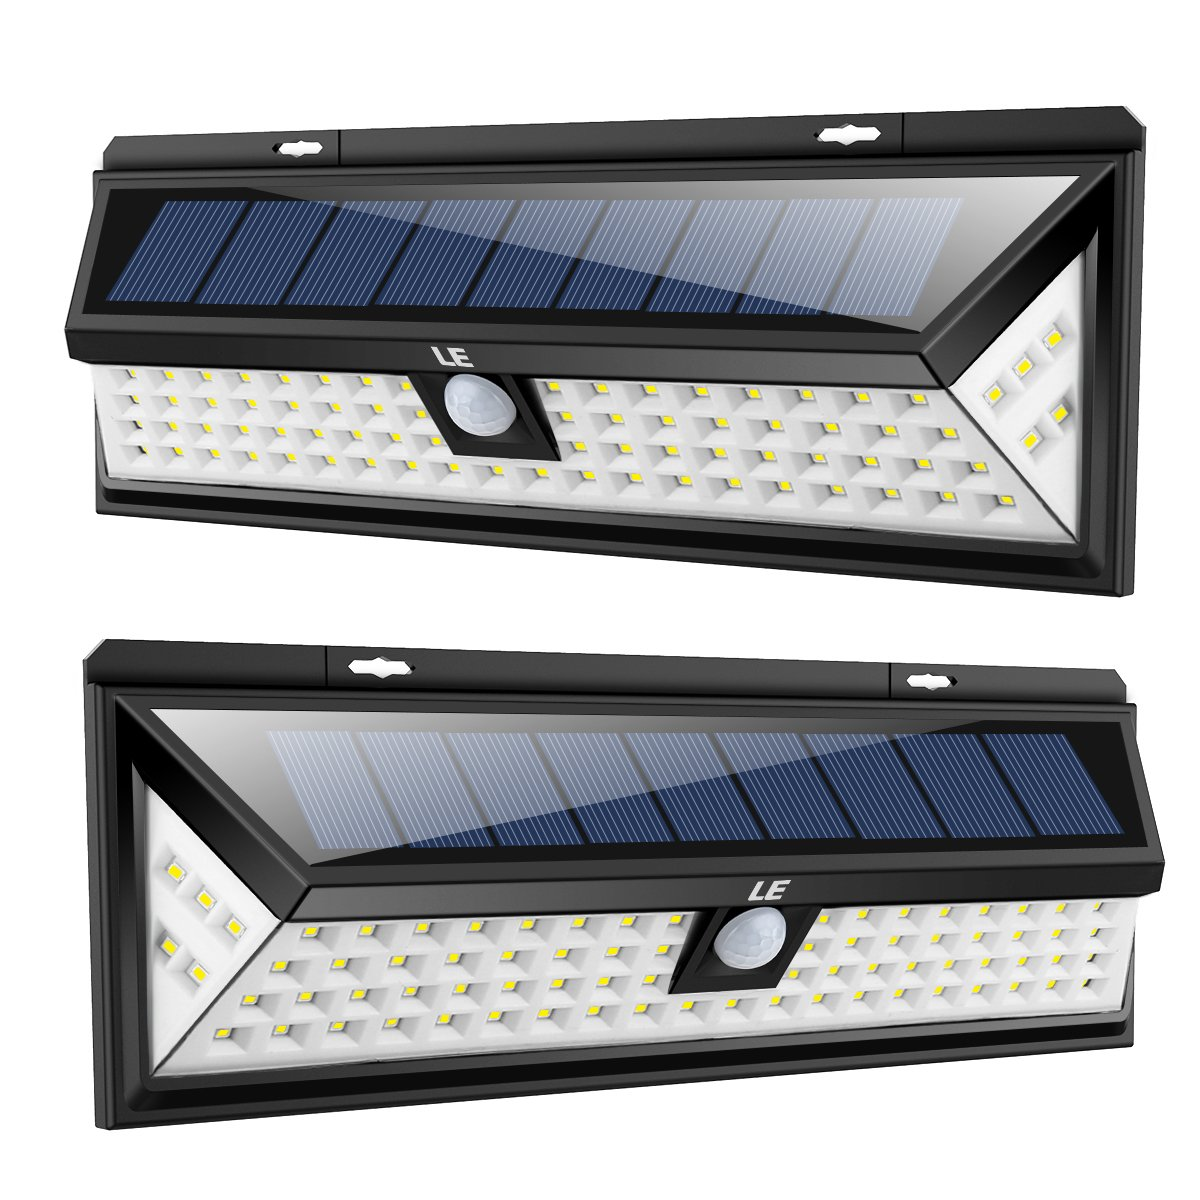 LE 80 LEDs Super Bright Solar Light Outdoor, Motion Sensor Solar Powered Lights, Waterproof Wall Lights and Wide Lighting Angle for Garage Patio Garden Driveway Yard (2 Pack)